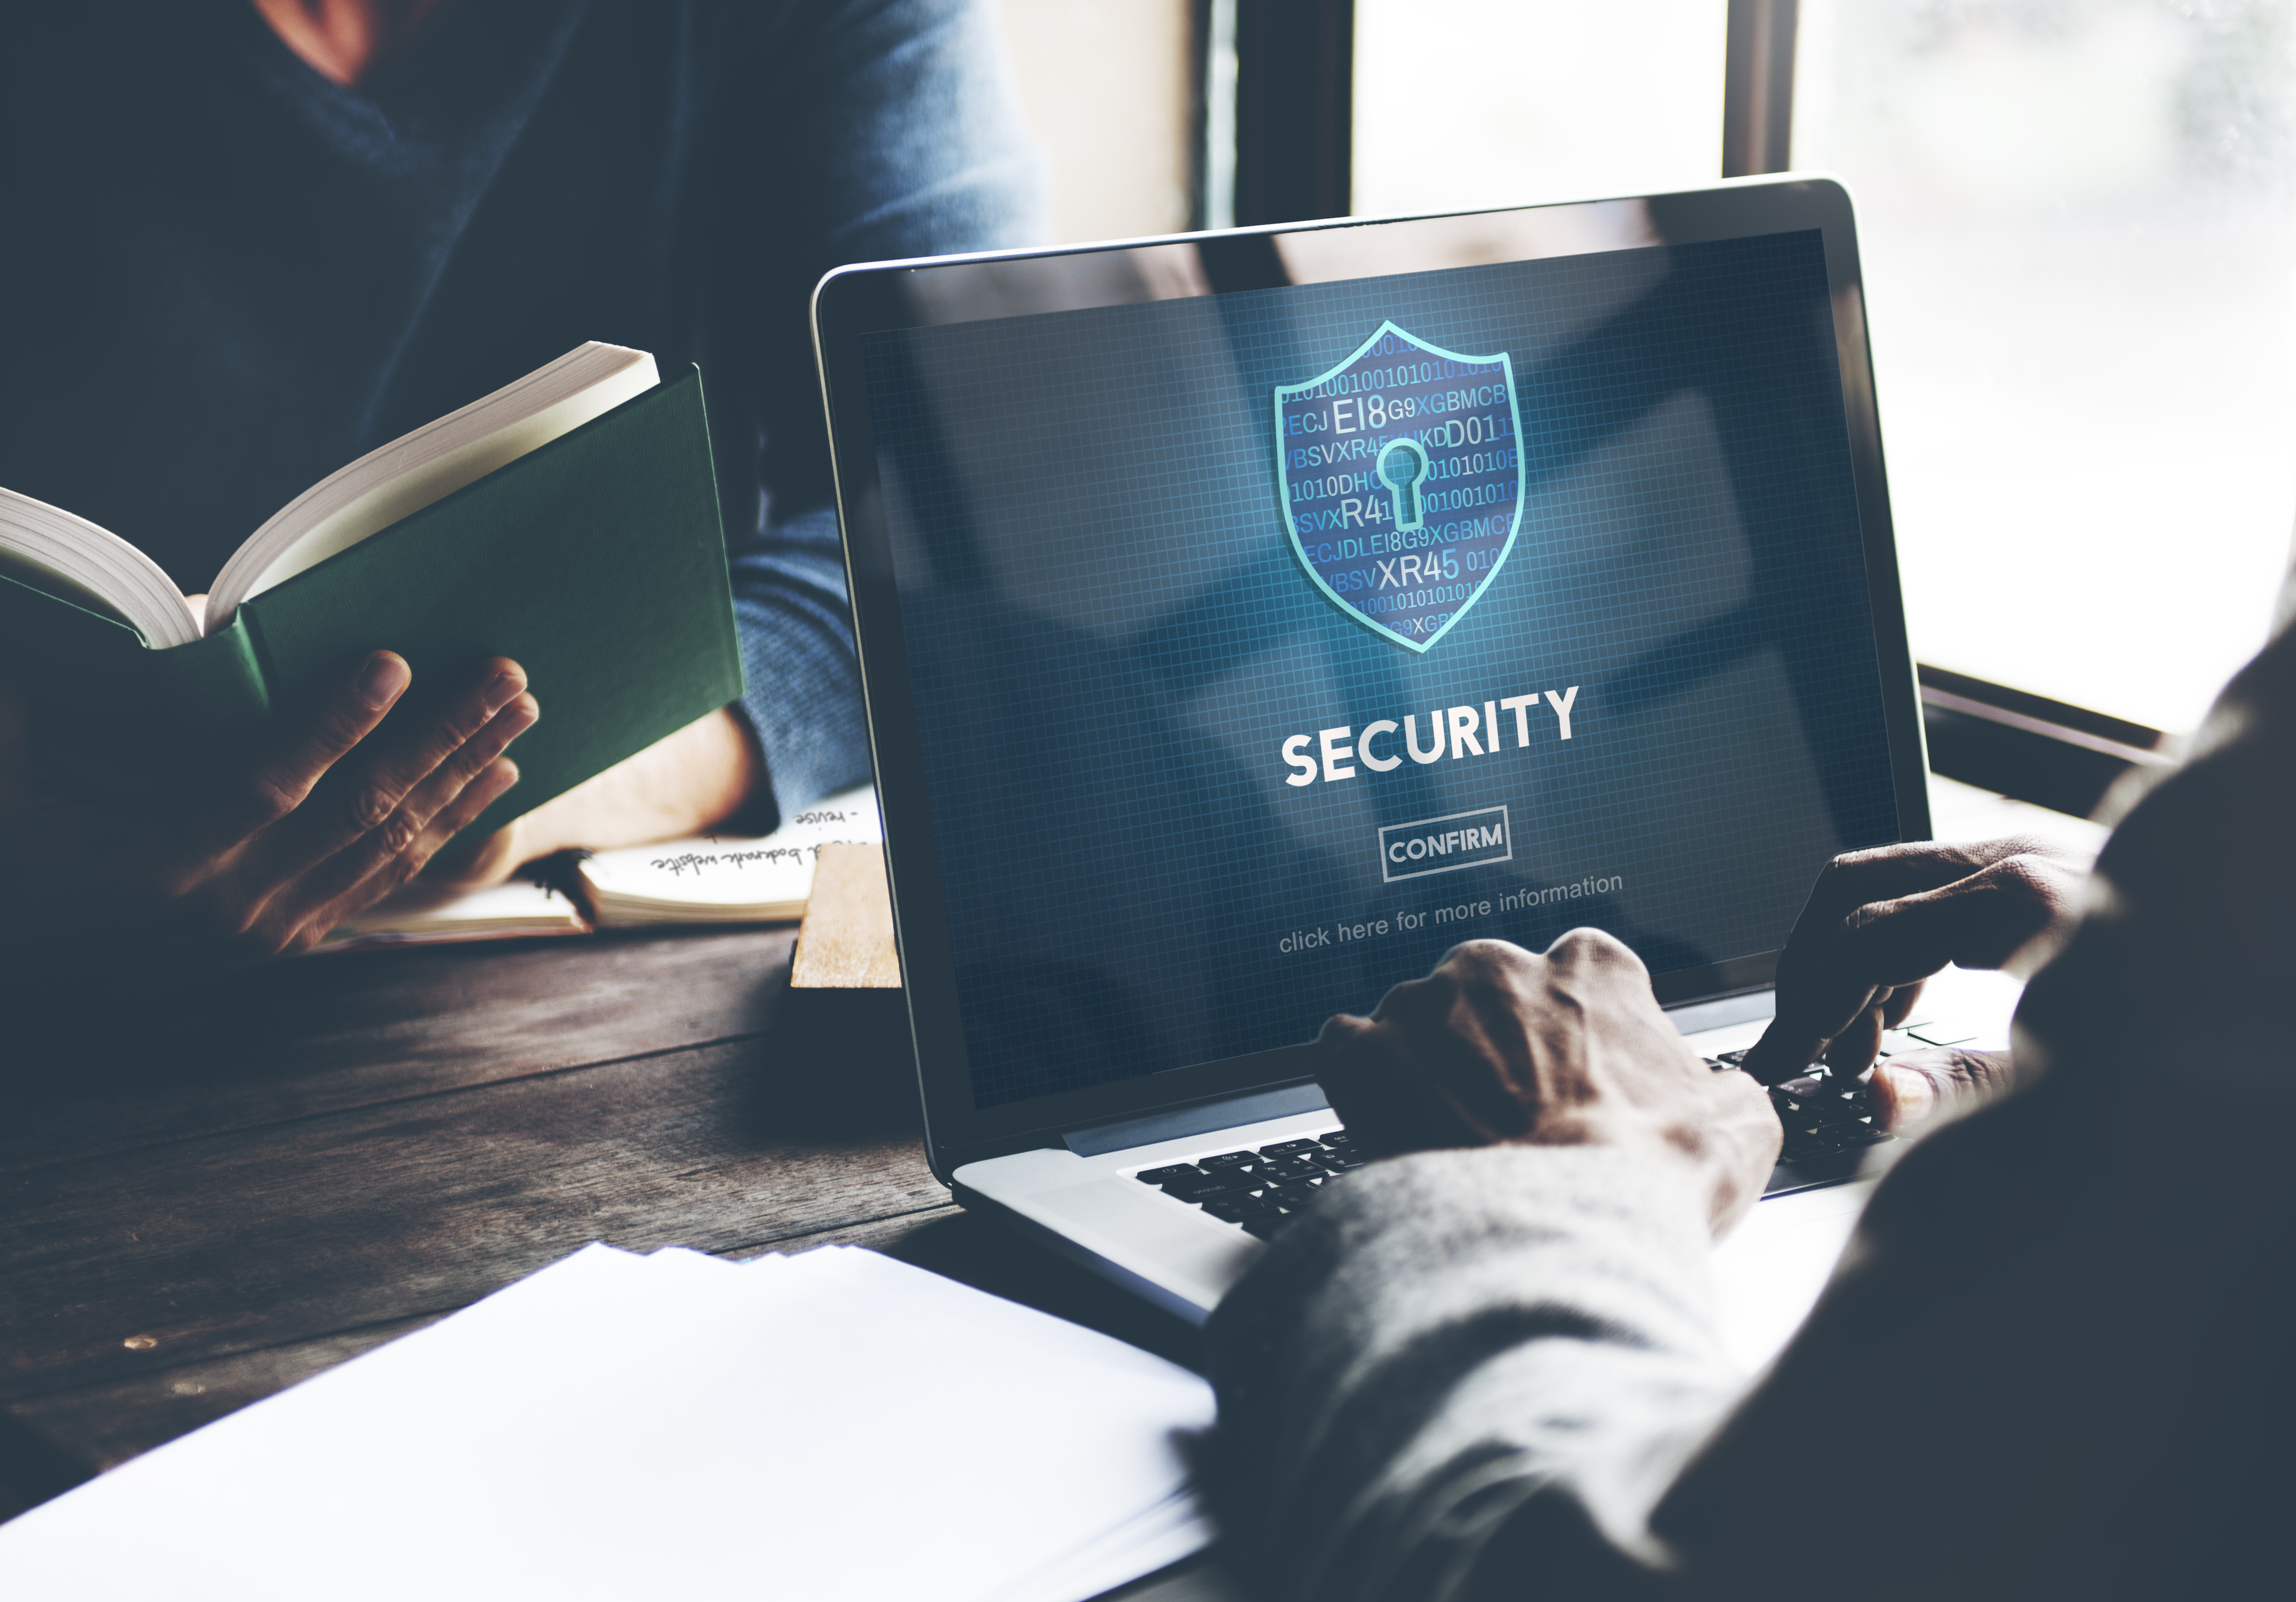 security on website on laptop screen